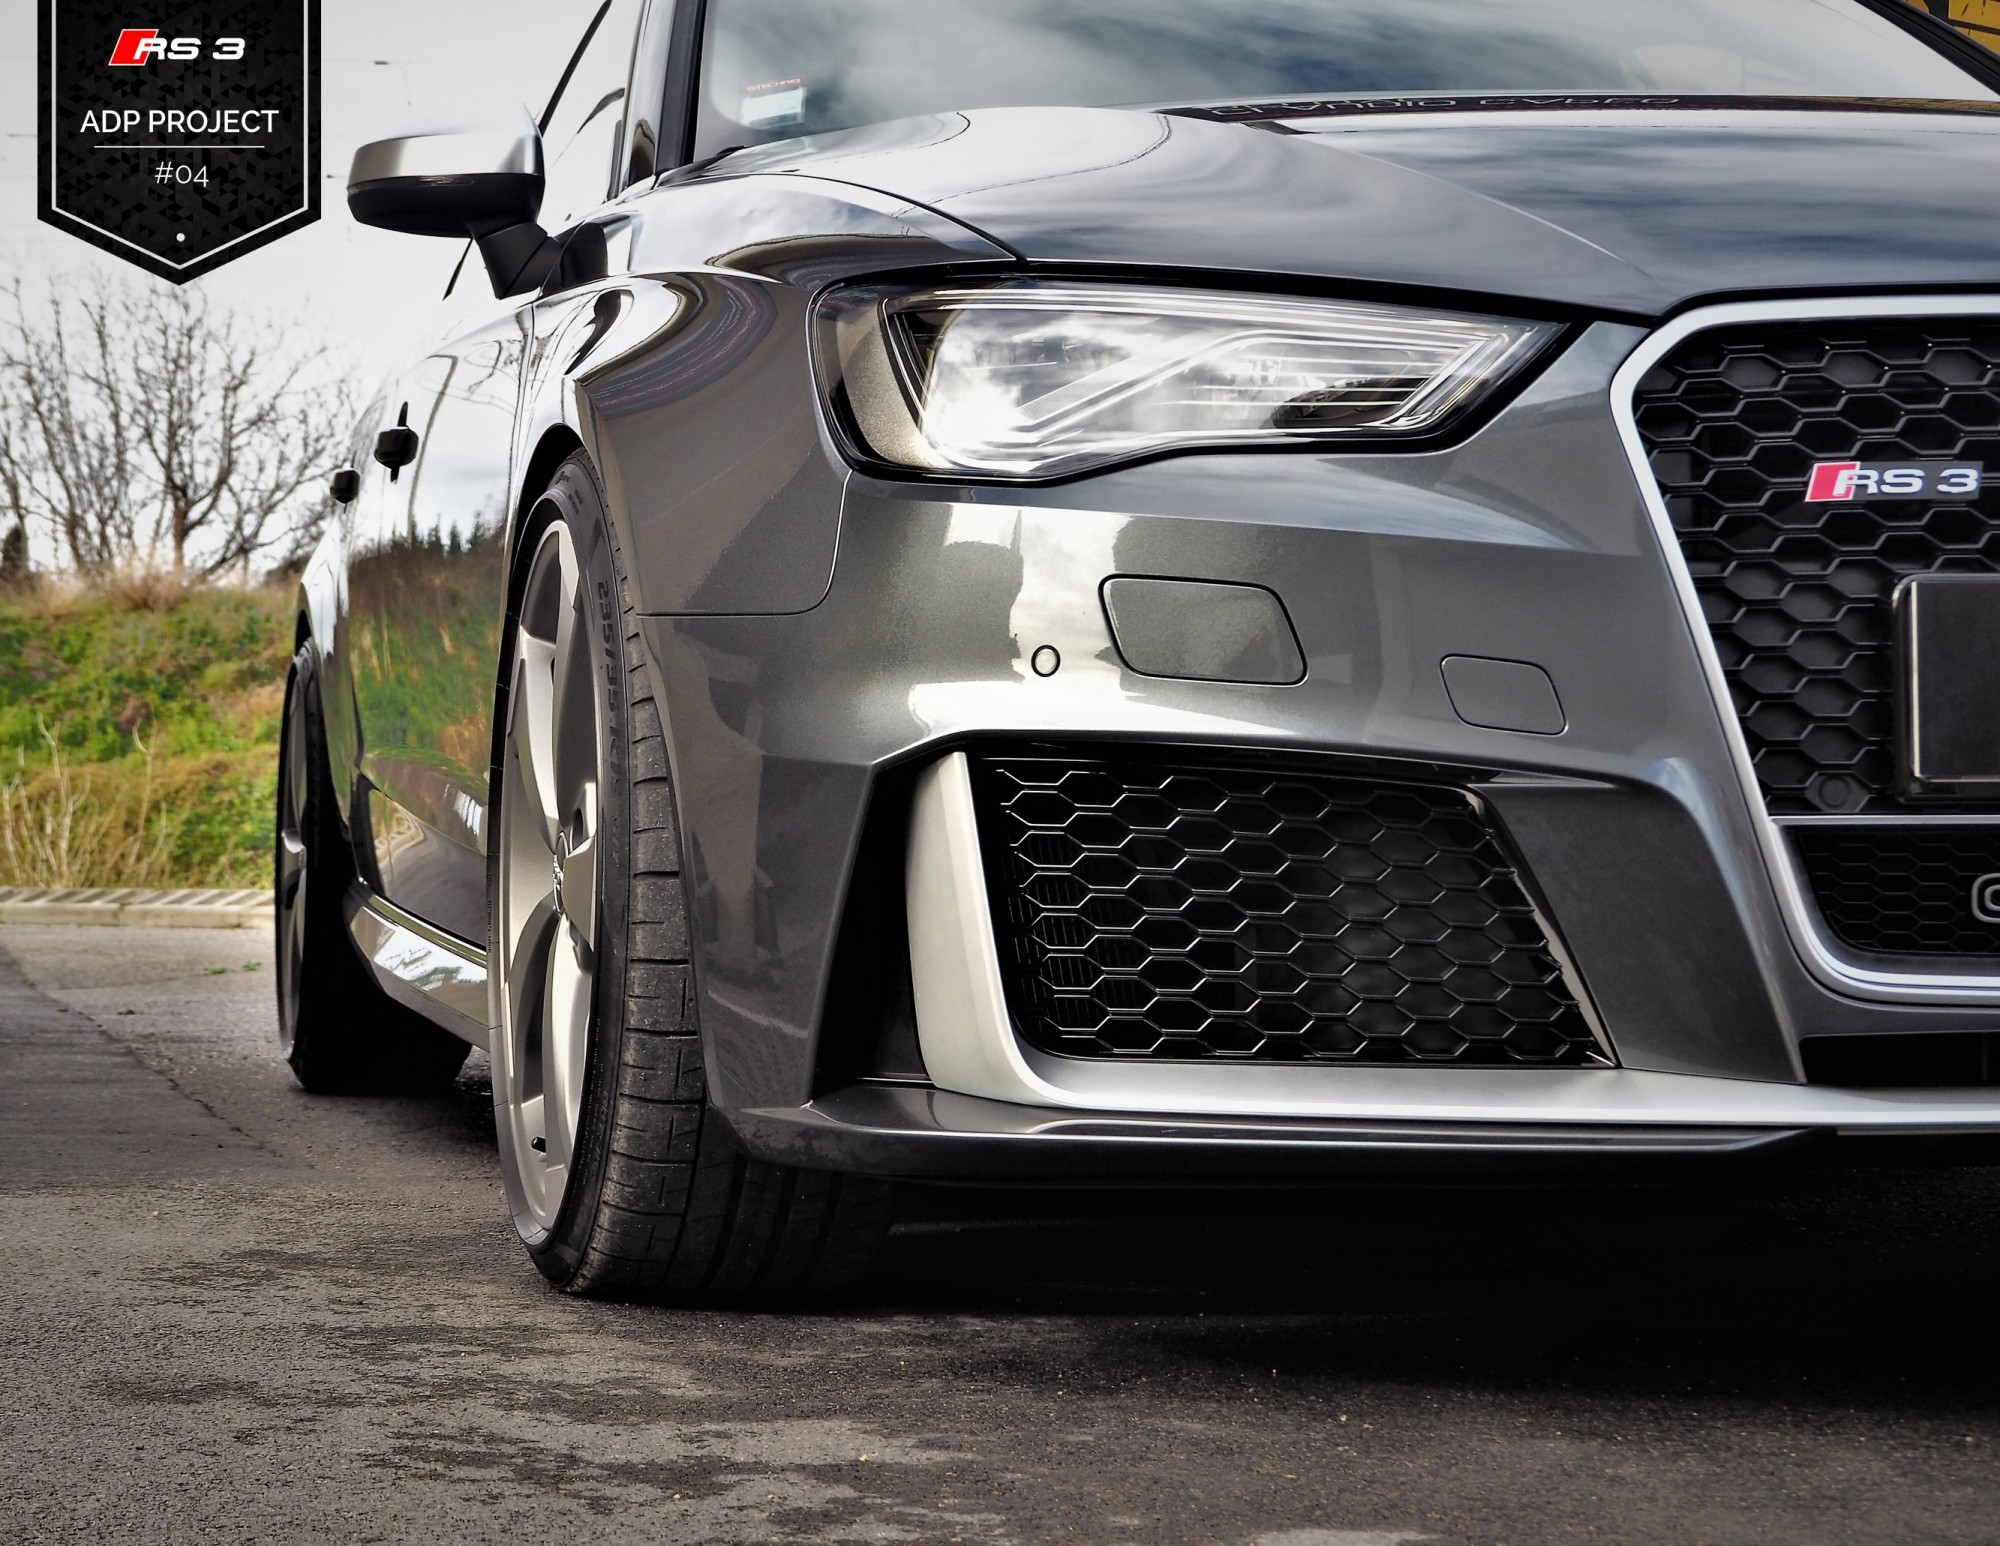 Audi rs3 adp project 04 ressorts courts for Audi salon de provence